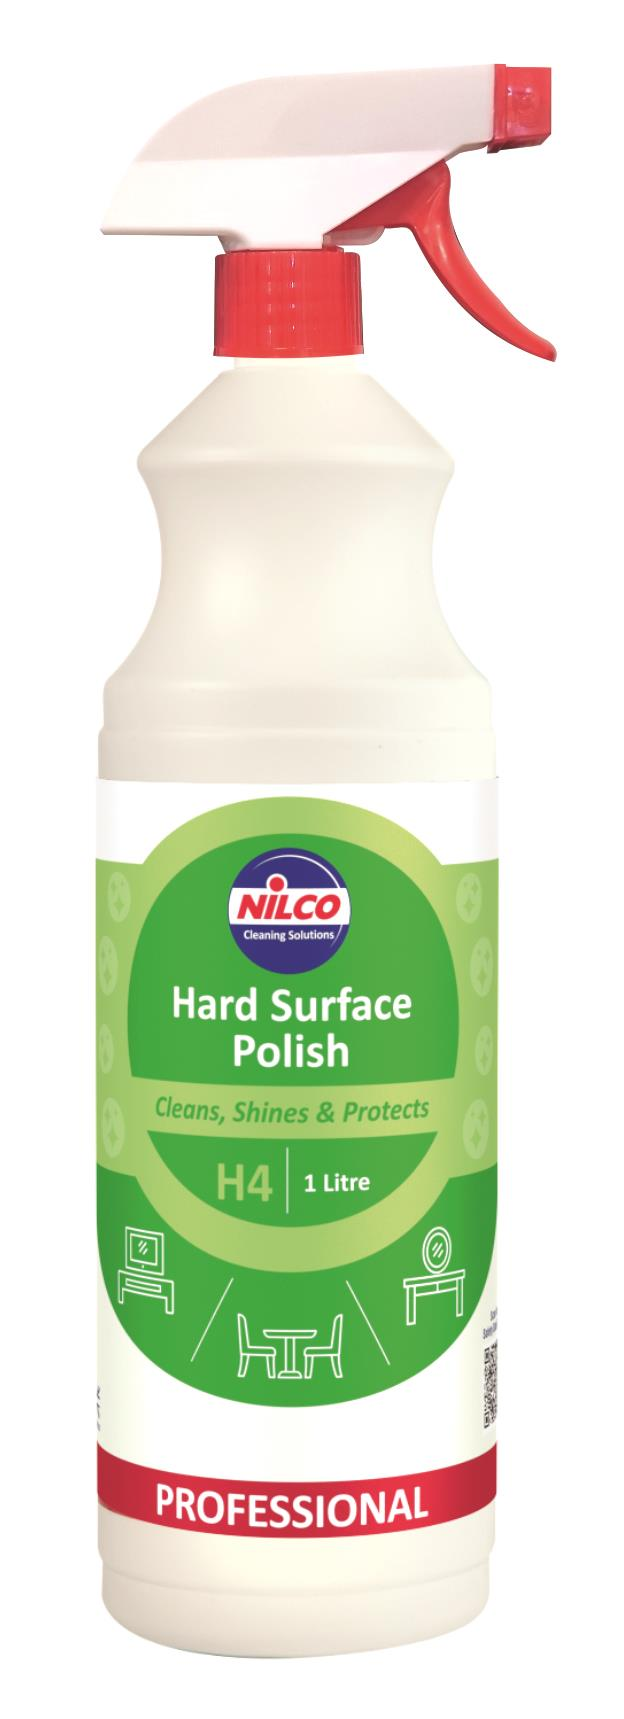 Nilco H4 Hard Surface Polish - 1L | Case of 6 | £5.53 Each